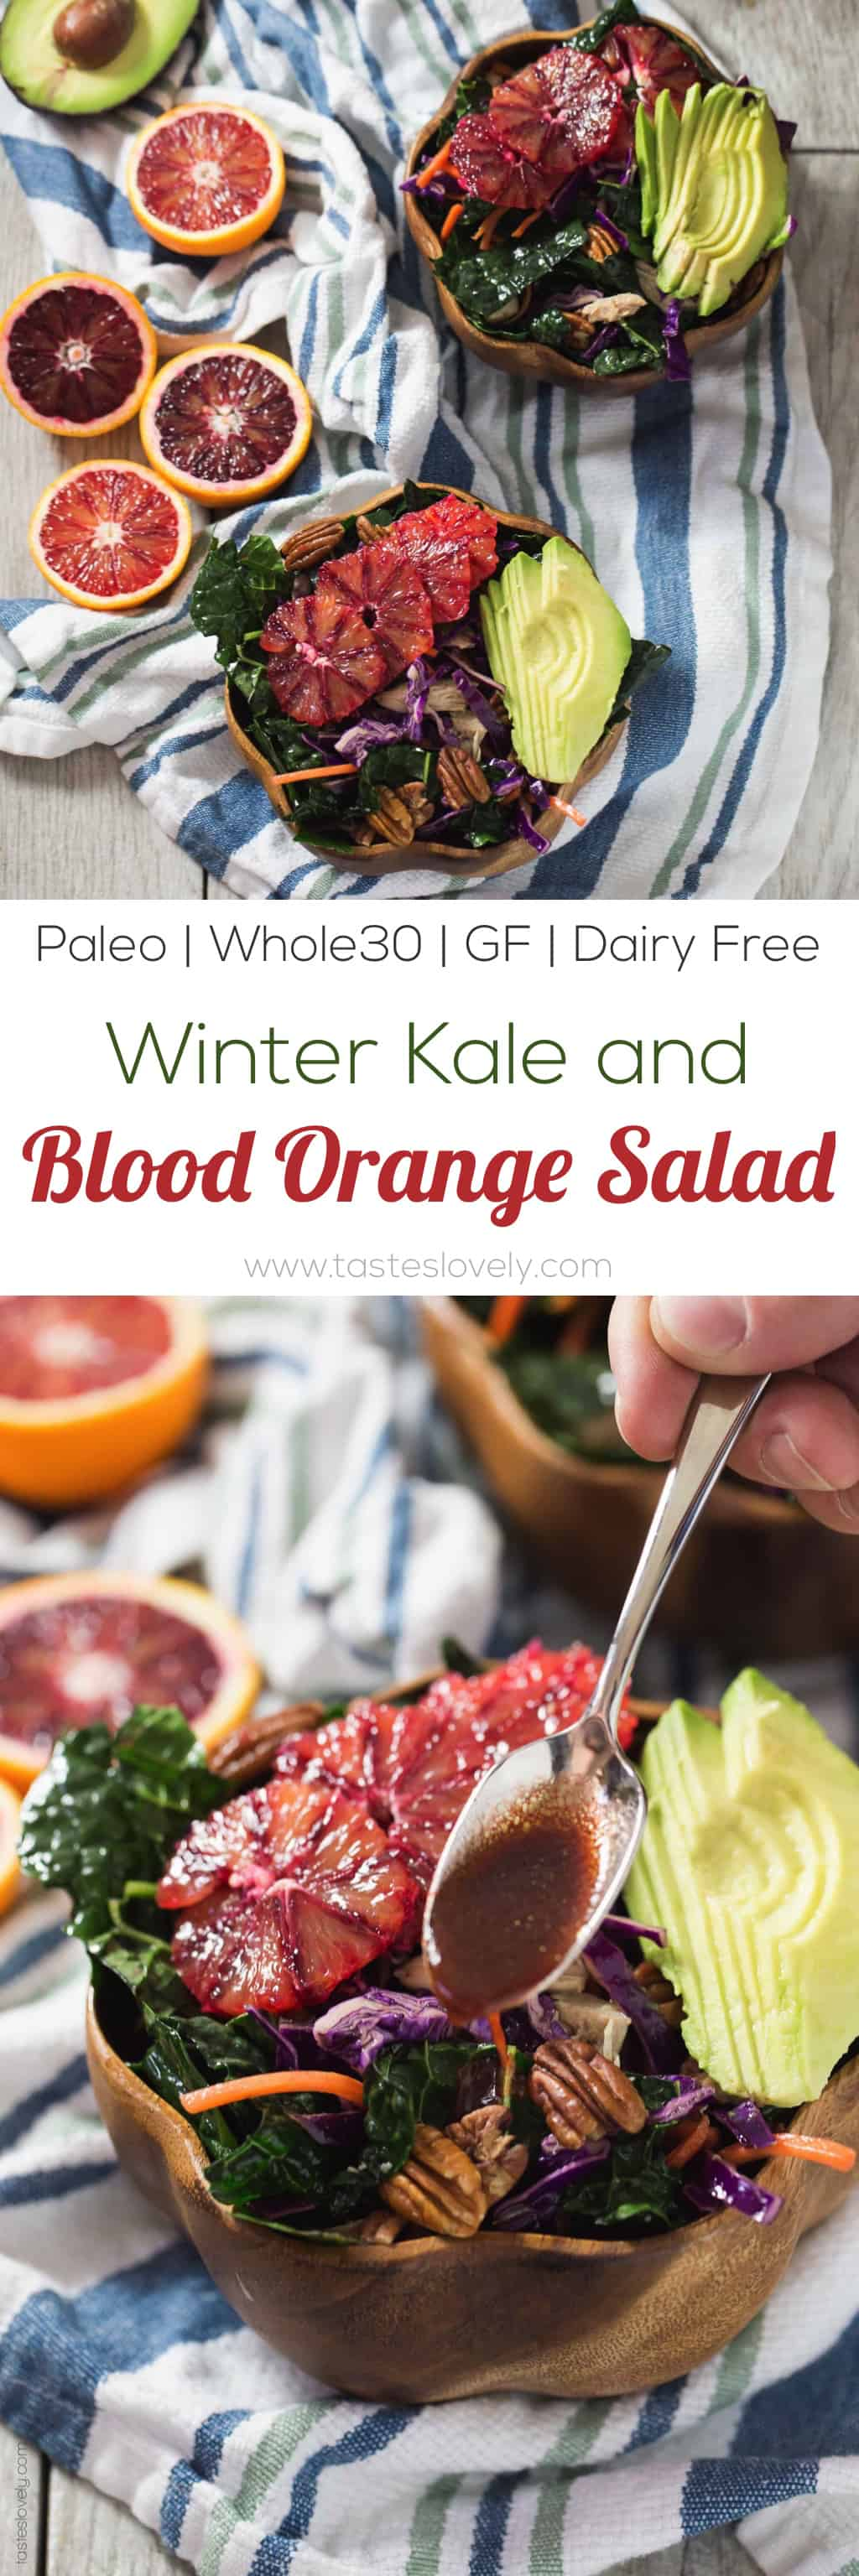 Winter Kale and Blood Orange Salad with a blood orange balsamic vinaigrette - a quick and healthy salad for lunch or dinner! (paleo, whole30, gluten free, dairy free, refined sugar free)